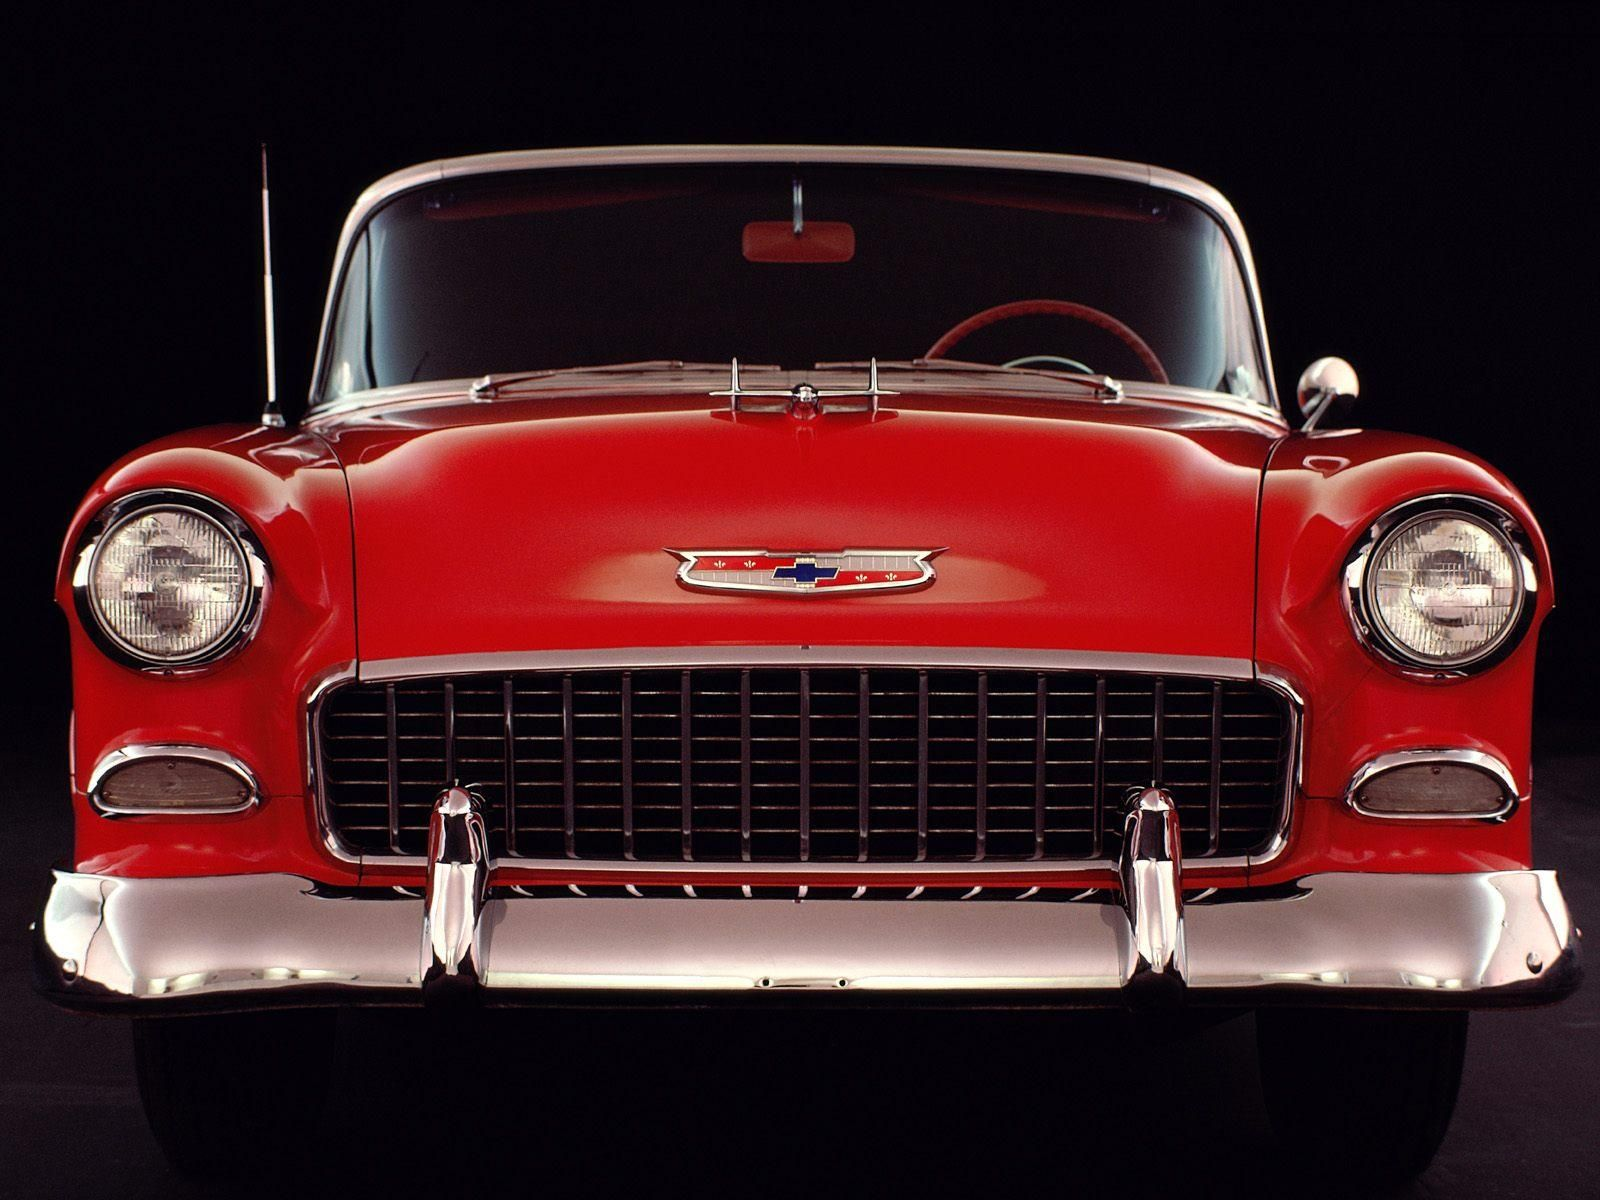 Vintage Car | An American classic car 1955 Chevrolet free desktop ...